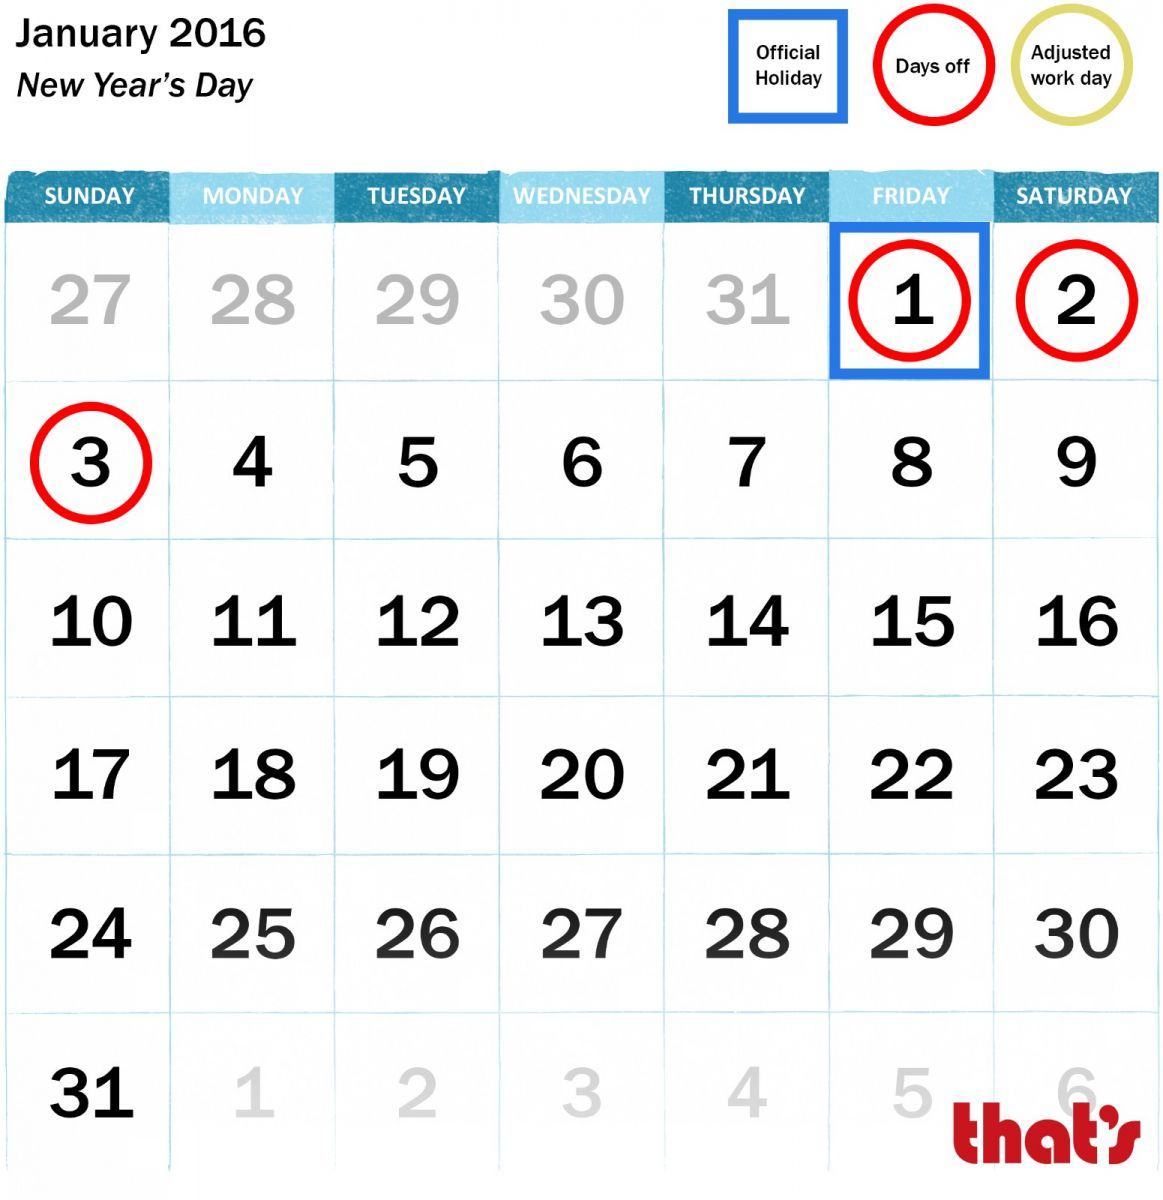 China January public holidays